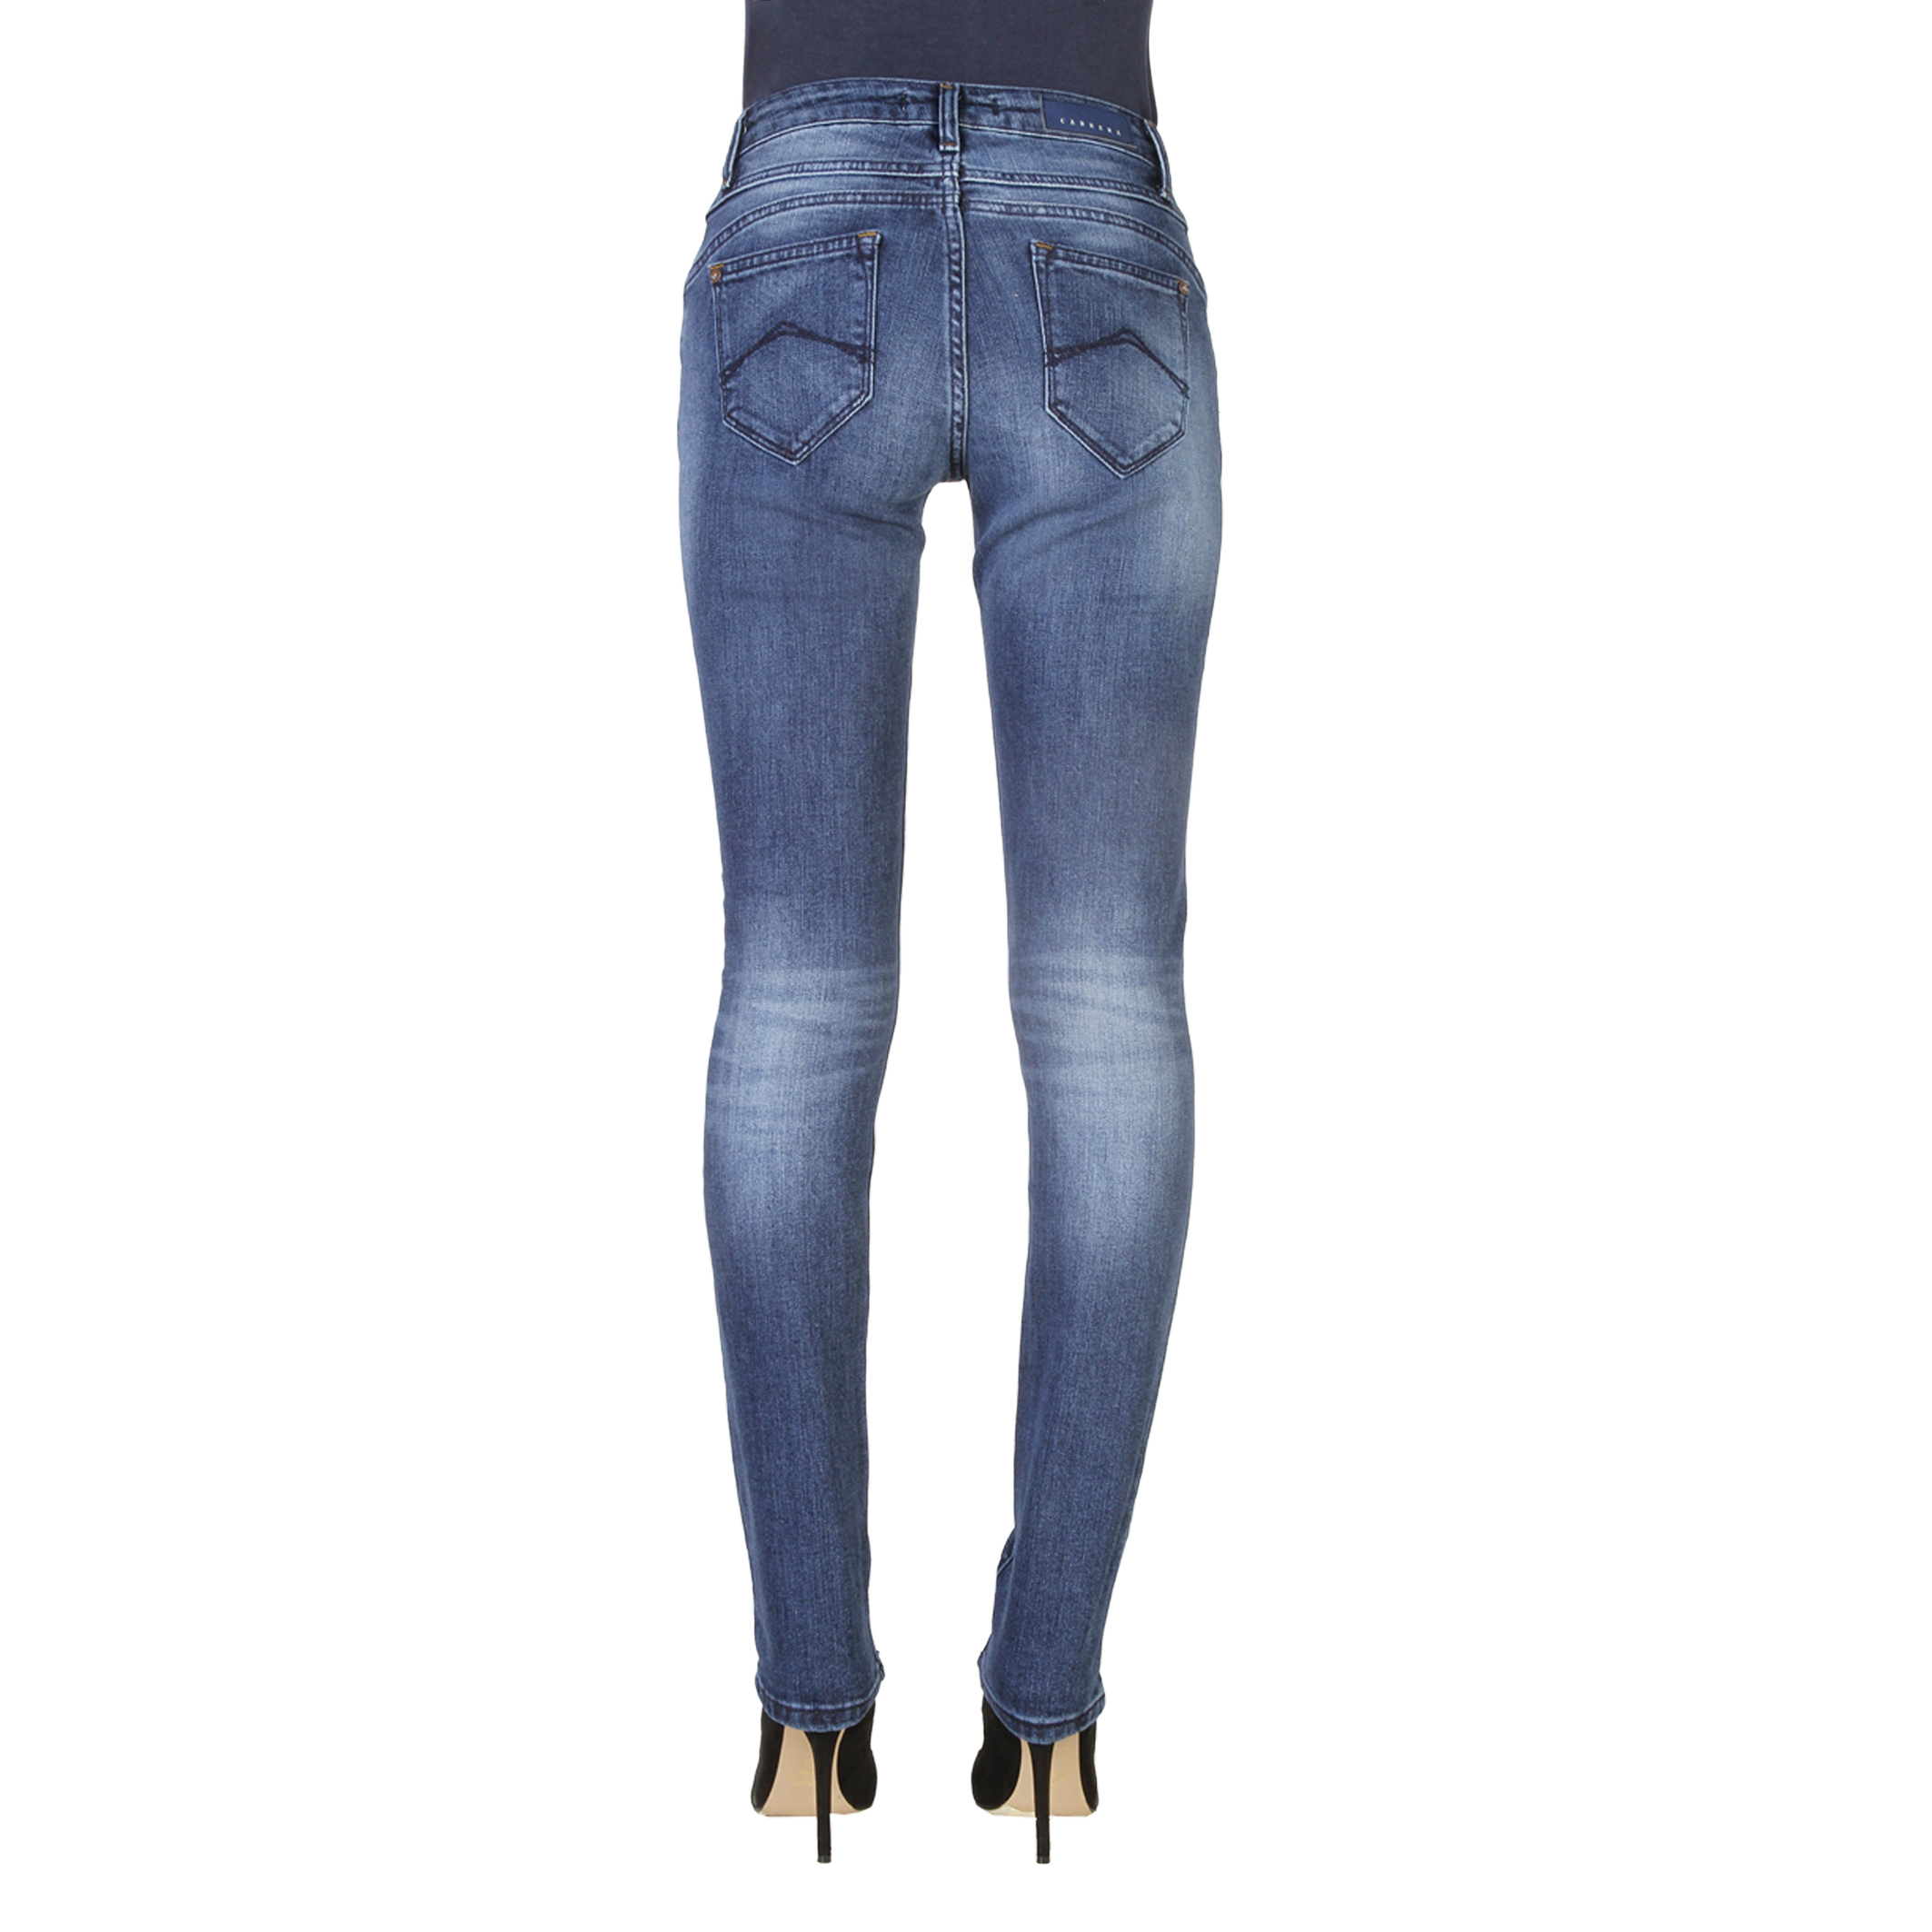 Jeans   Carrera Jeans 00752C_0970A blue